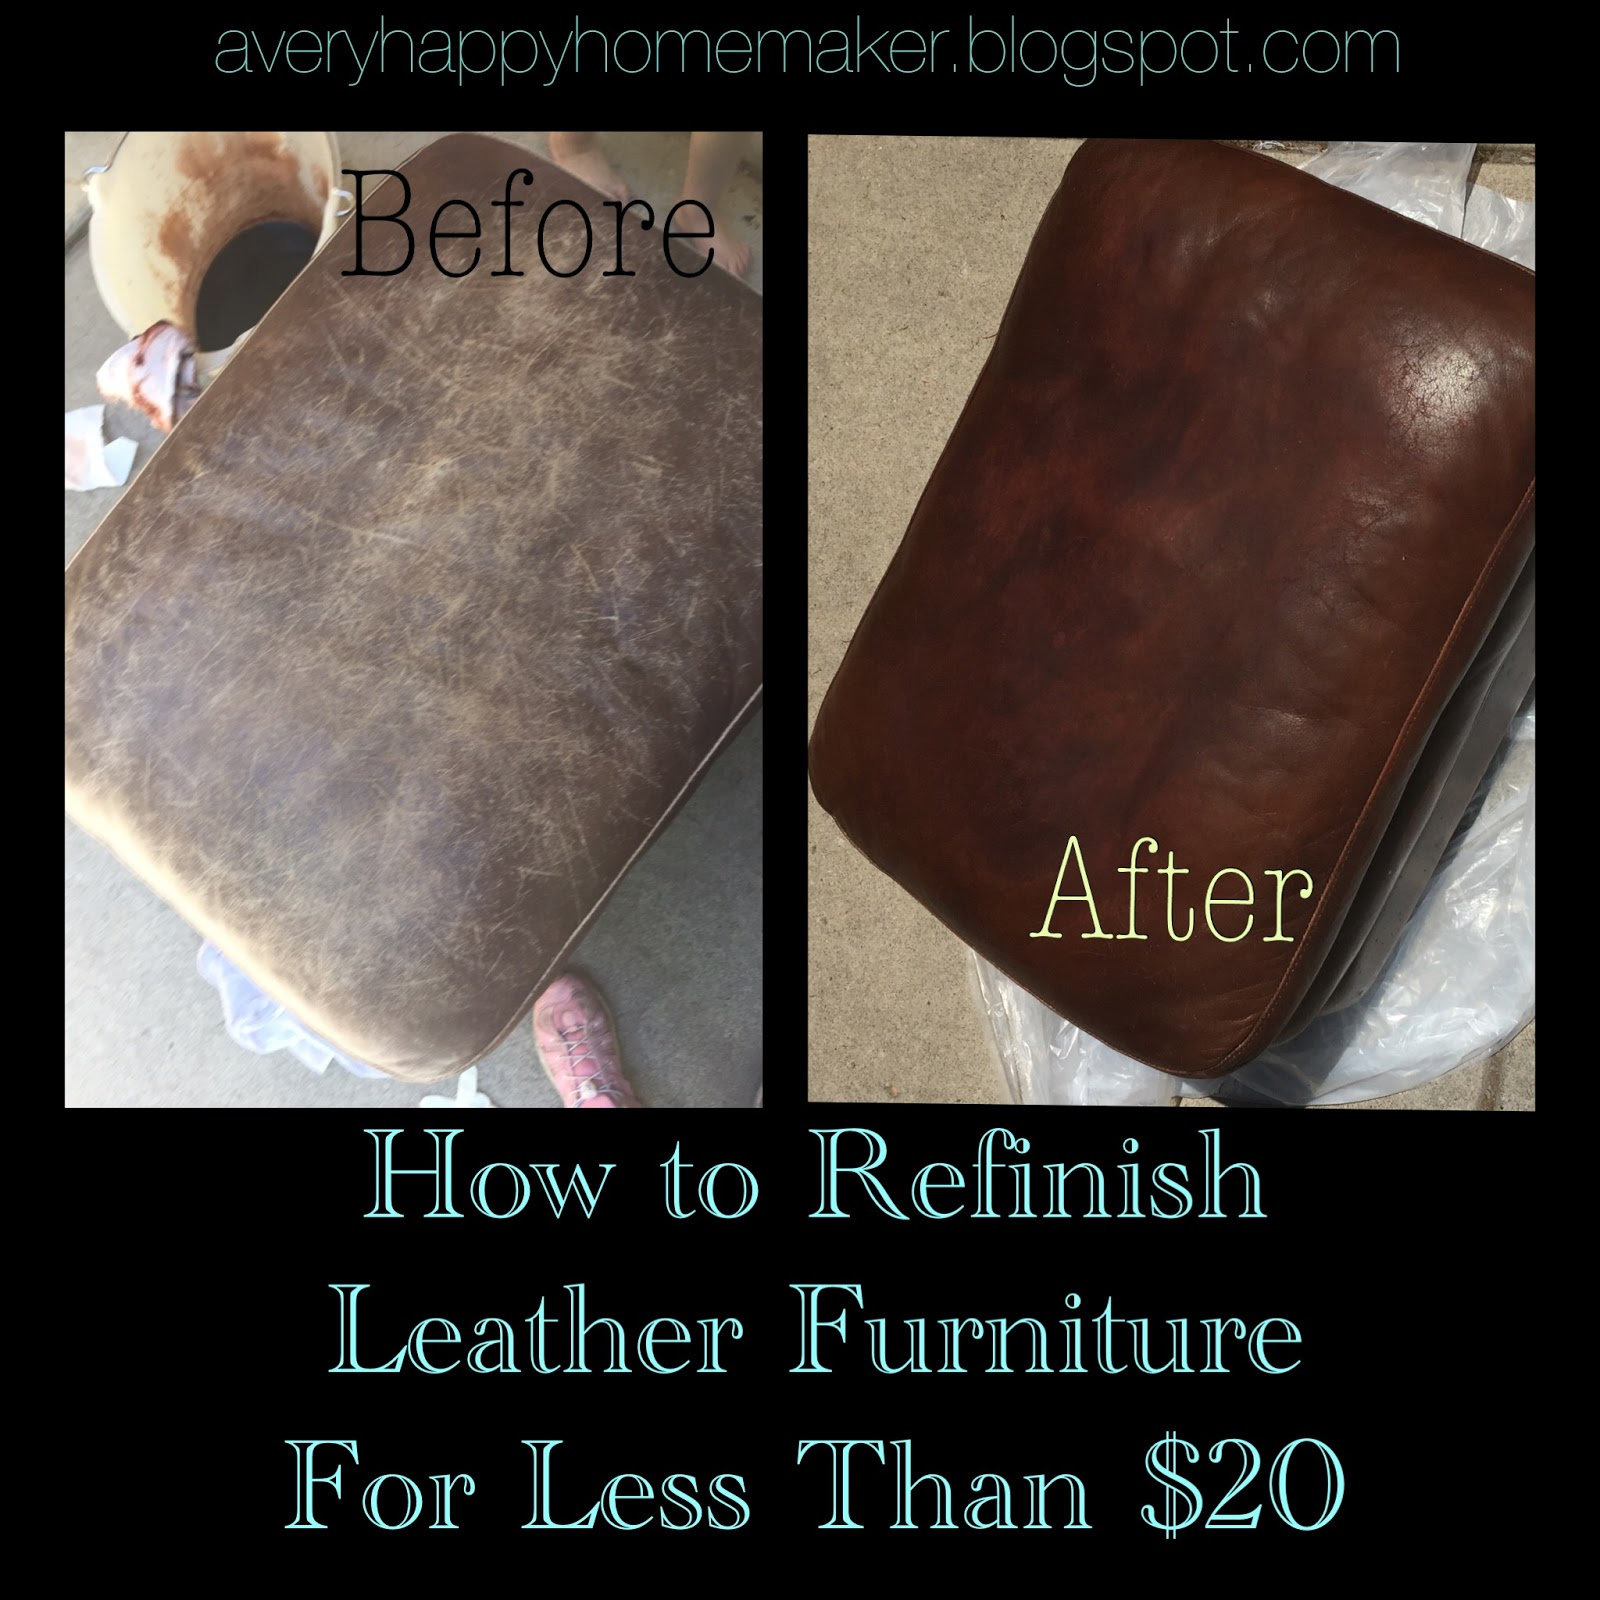 A Very Happy Homemaker Refinish Leather Furniture For